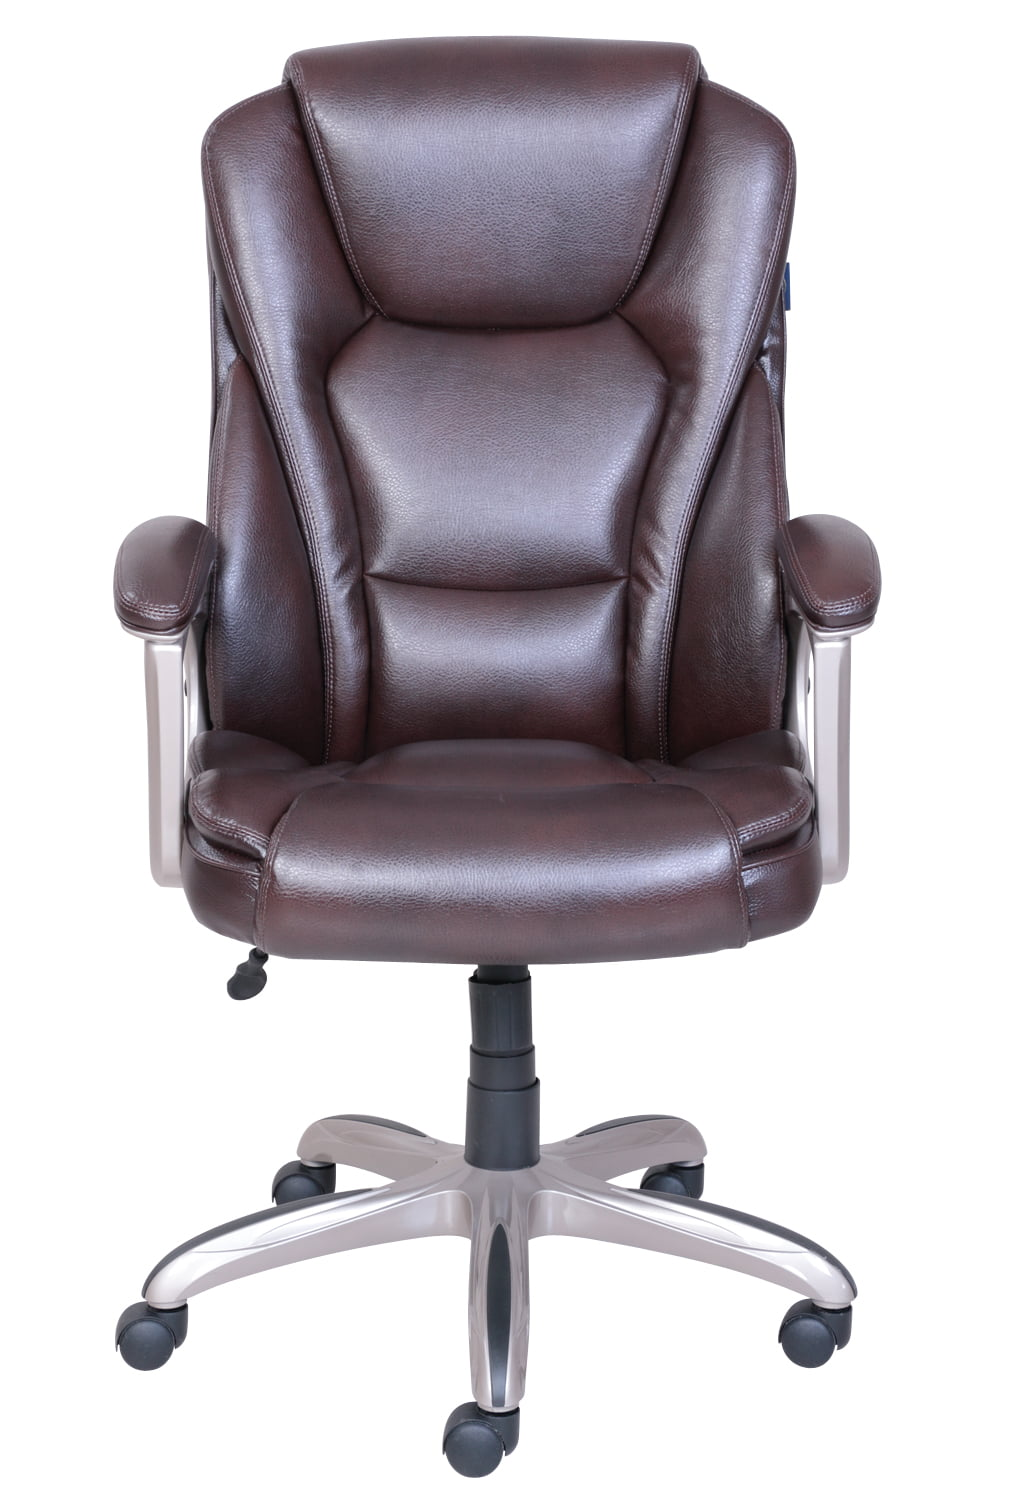 w foam memory walmart serta f office chair big deal image tall commercial brown with